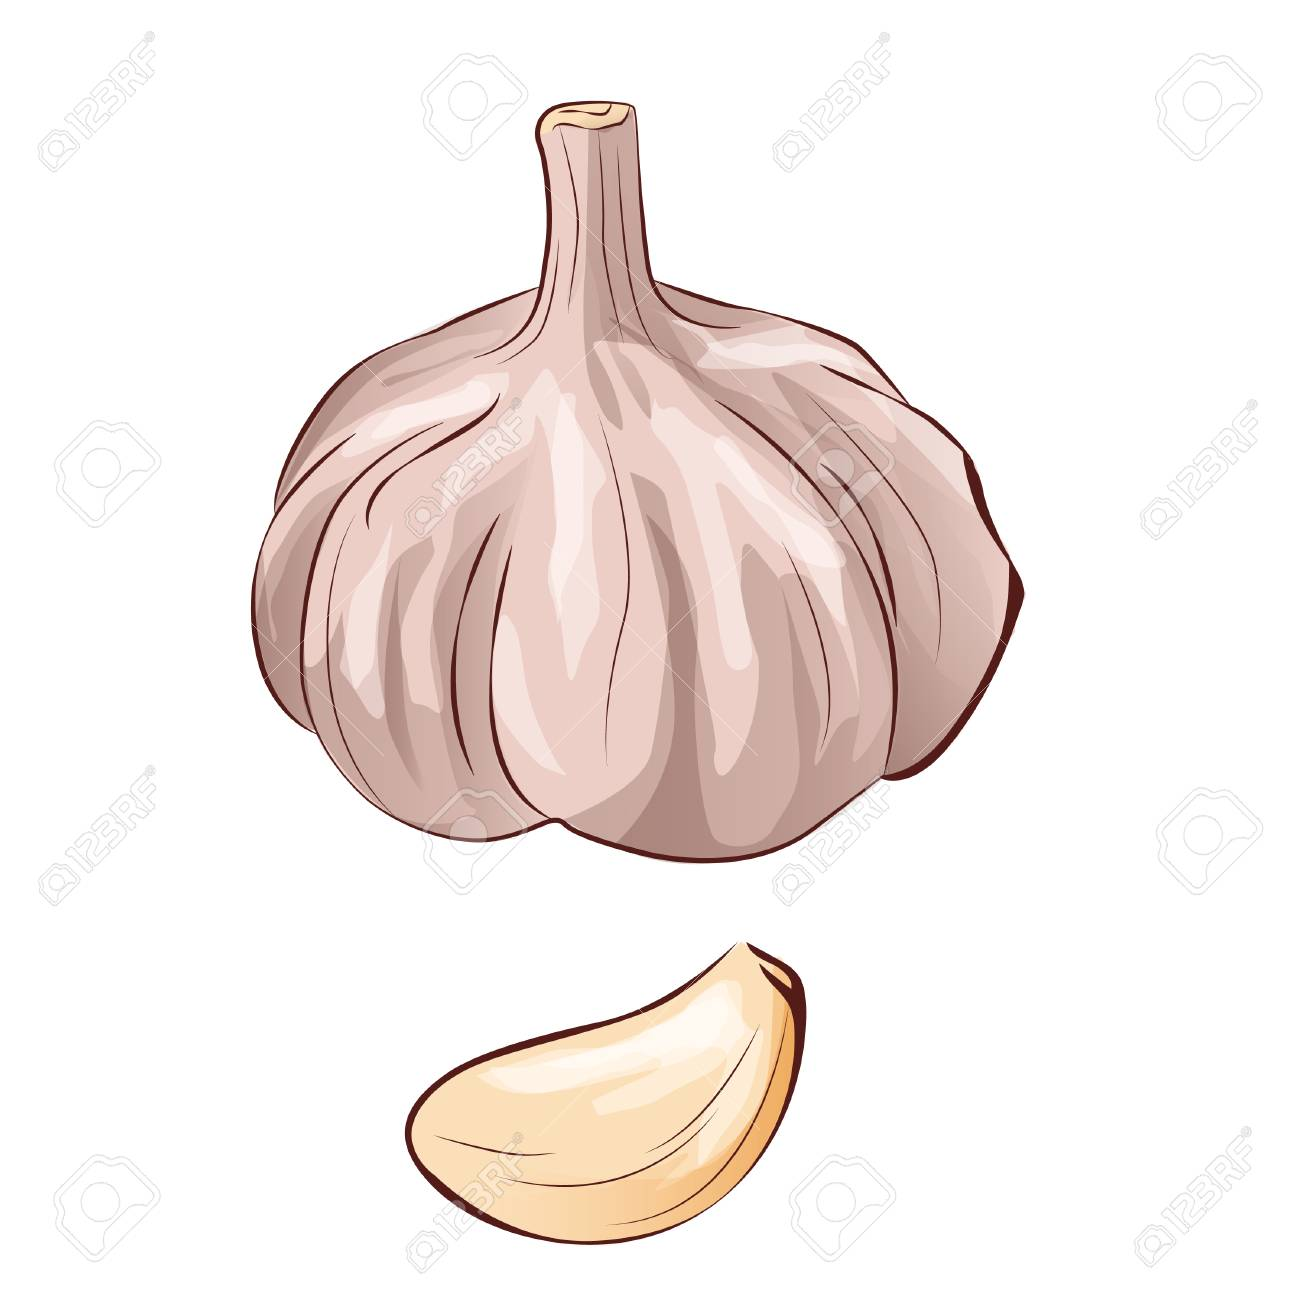 garlic in flat cartoon style isolated object vegetable from royalty free cliparts vectors and stock illustration image 87205133 garlic in flat cartoon style isolated object vegetable from